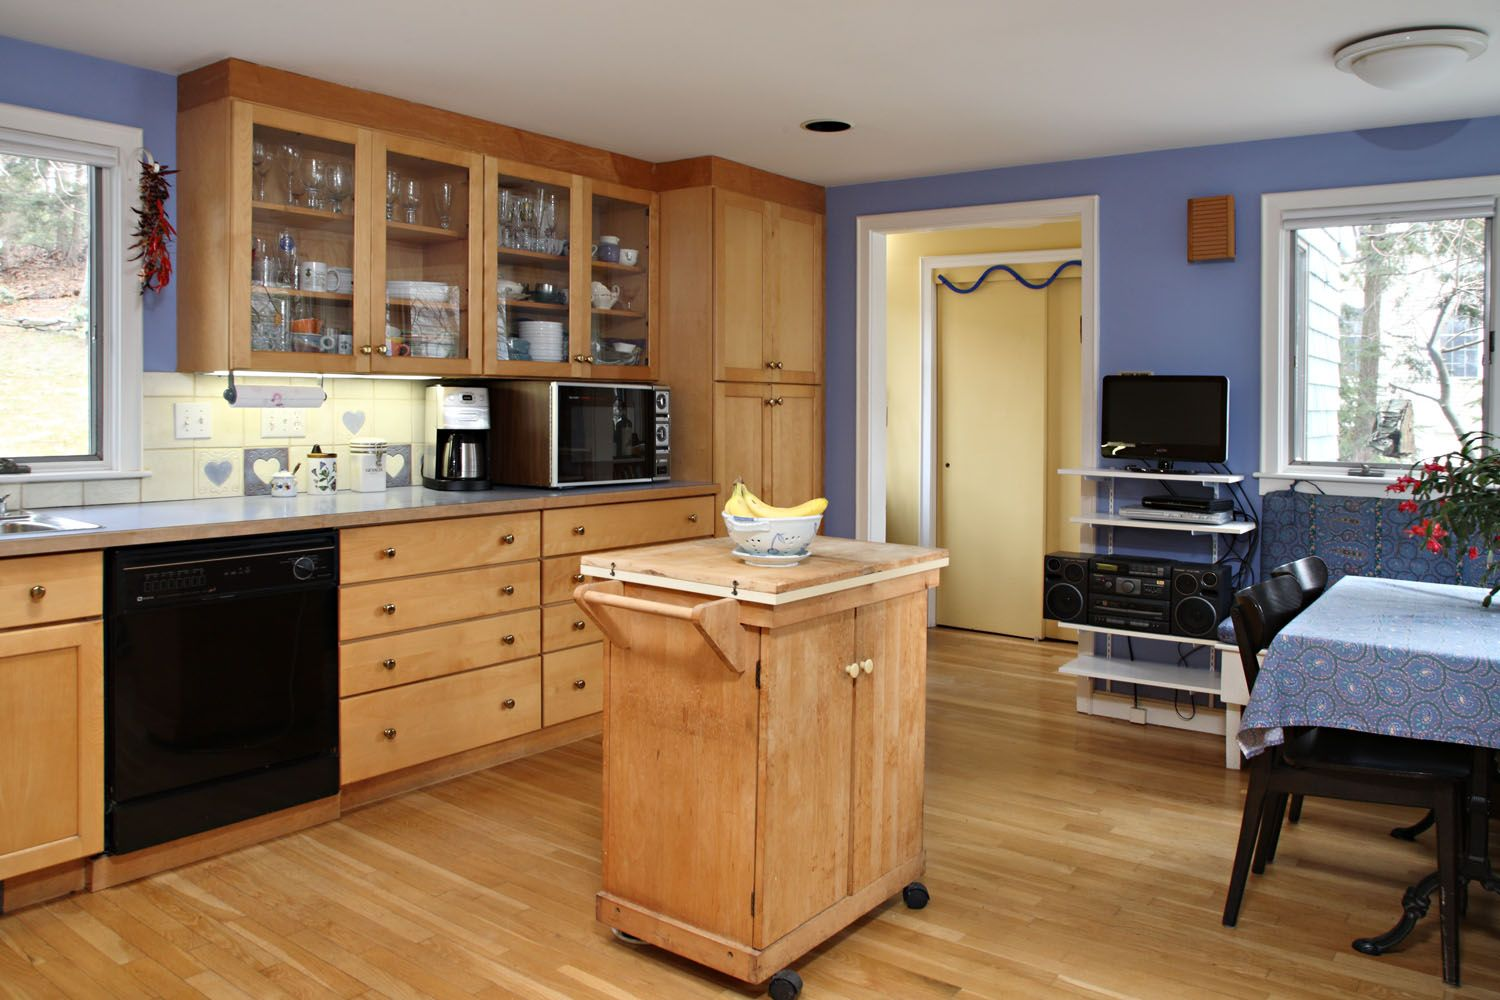 Natural Design Of The Kitchen Paint Color With Maple